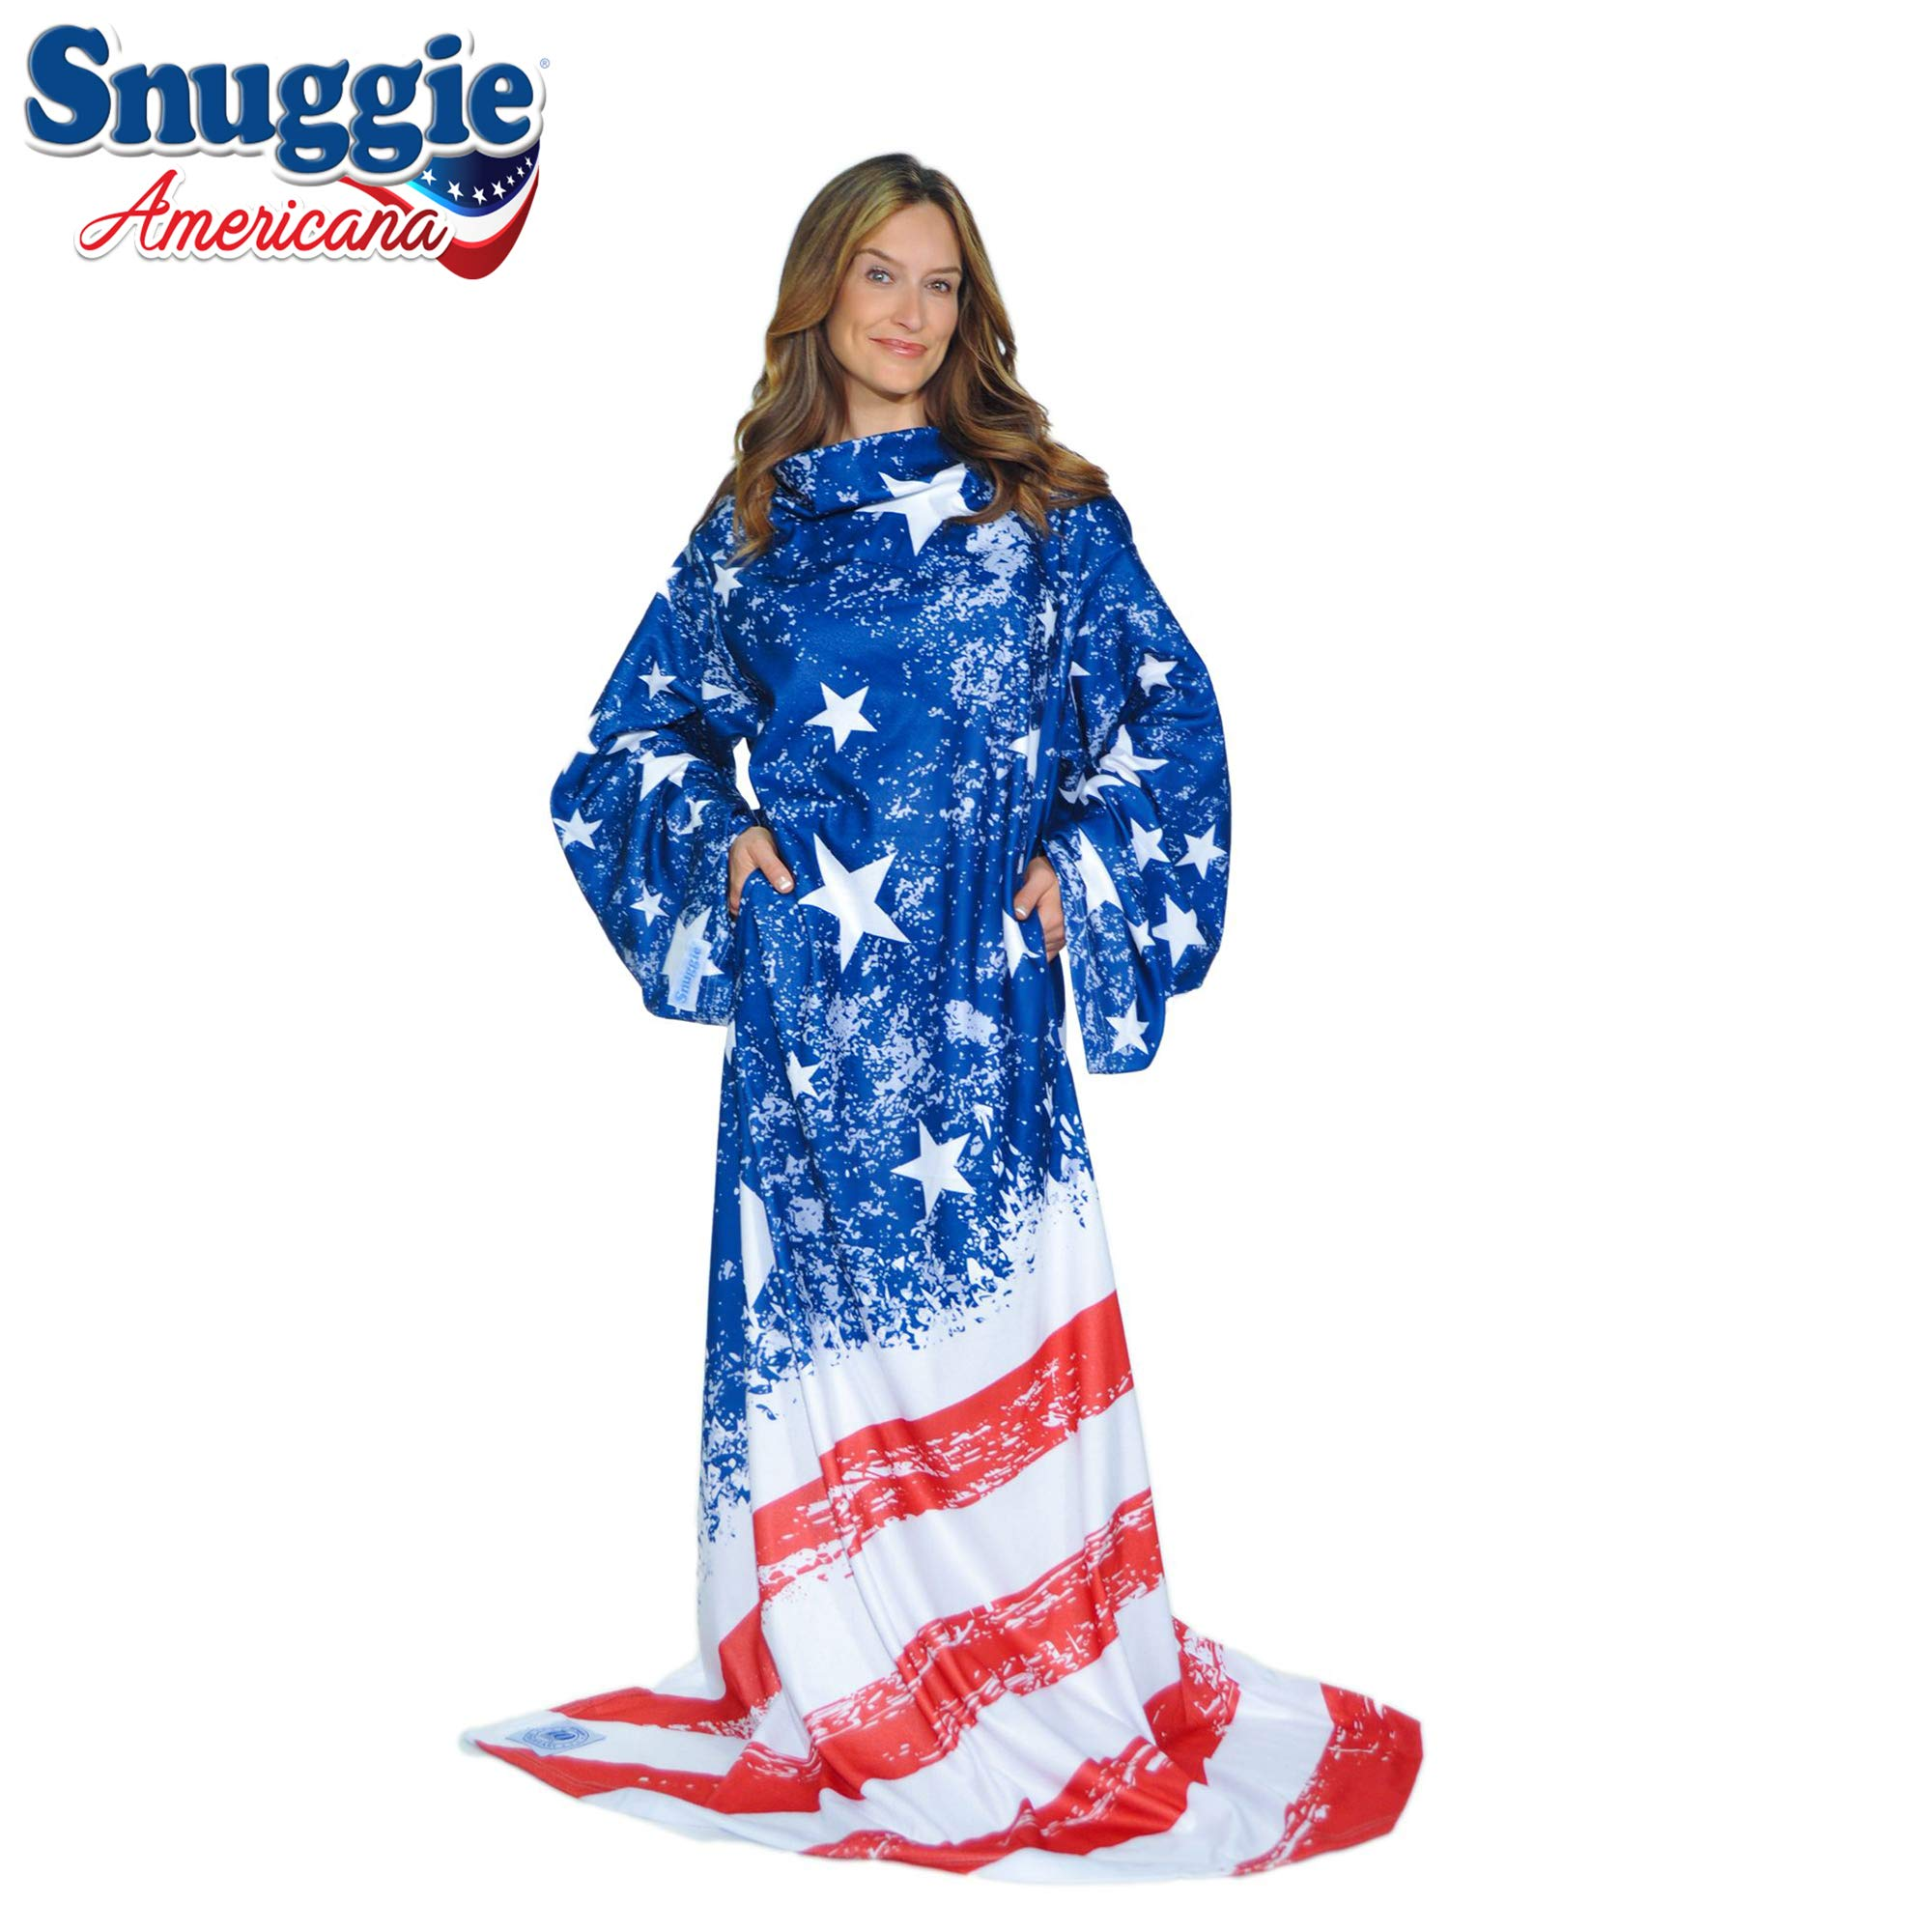 Snuggie Americana- The Original Blanket with Sleeves, Warm Fleece, Fits Most Adults 71''x 54'', Red, White & Blue America Flag- Bonus Warm Cozy Socks Included by Snuggie